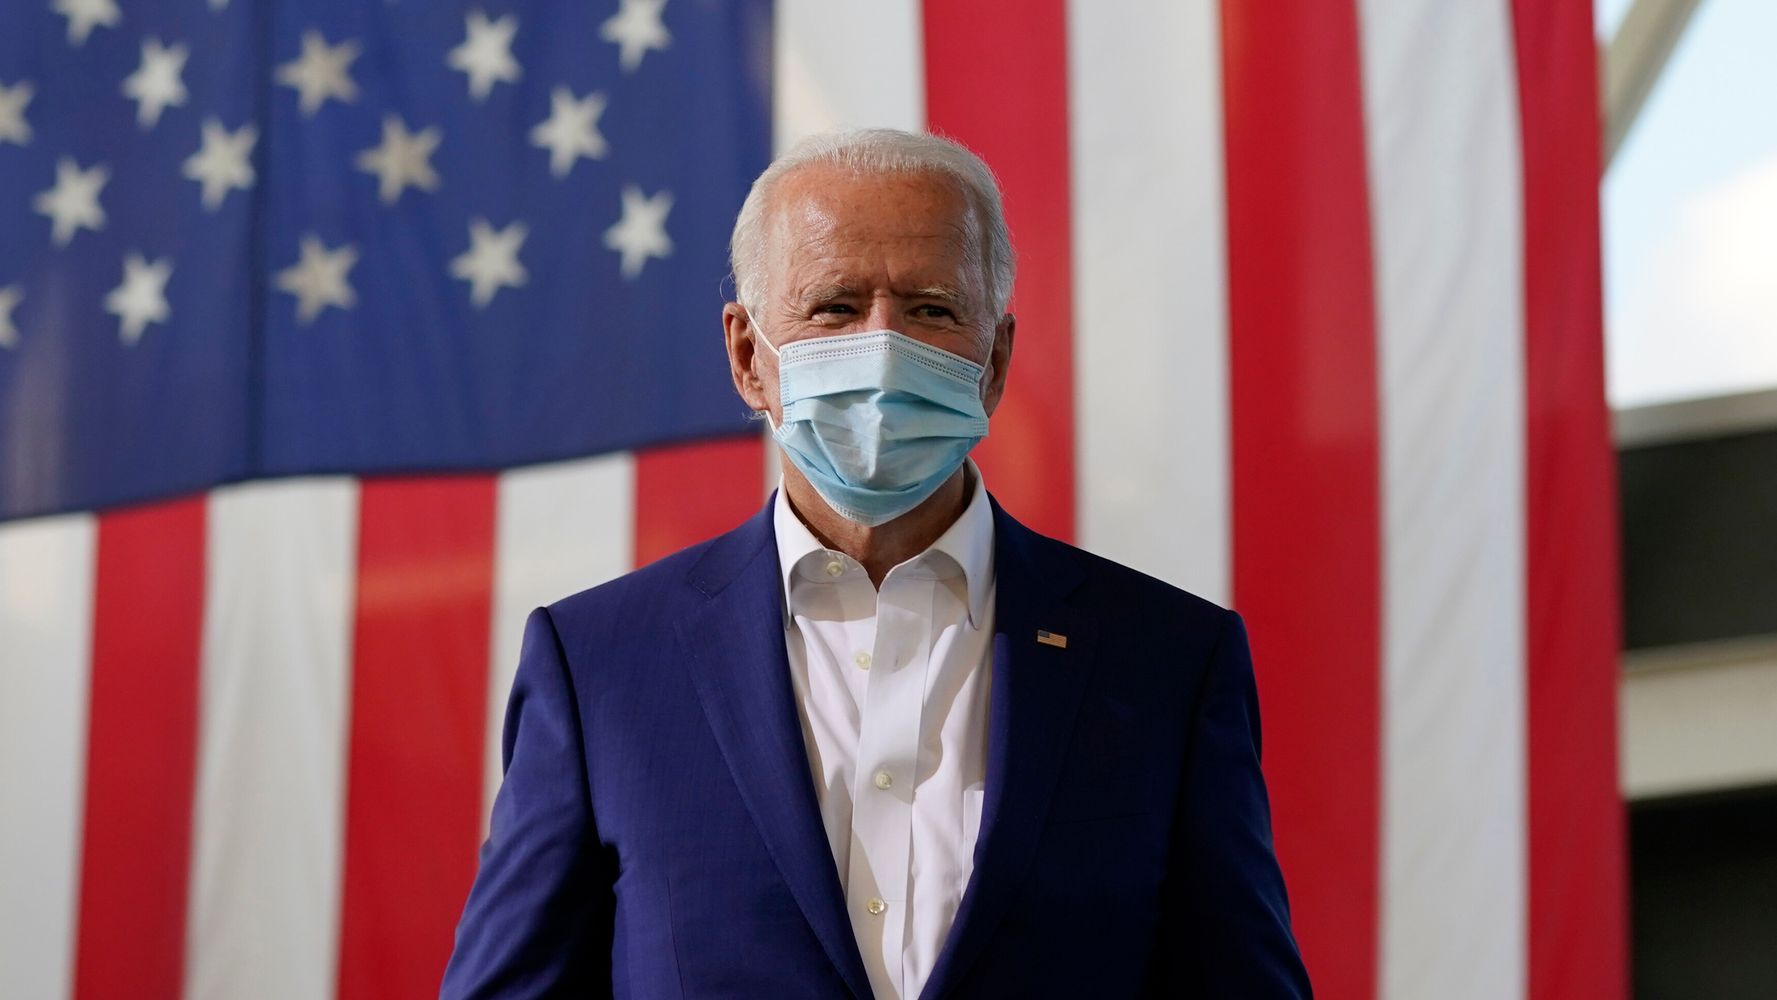 The Left Has Given Joe Biden Space. They Won't If He Wins.